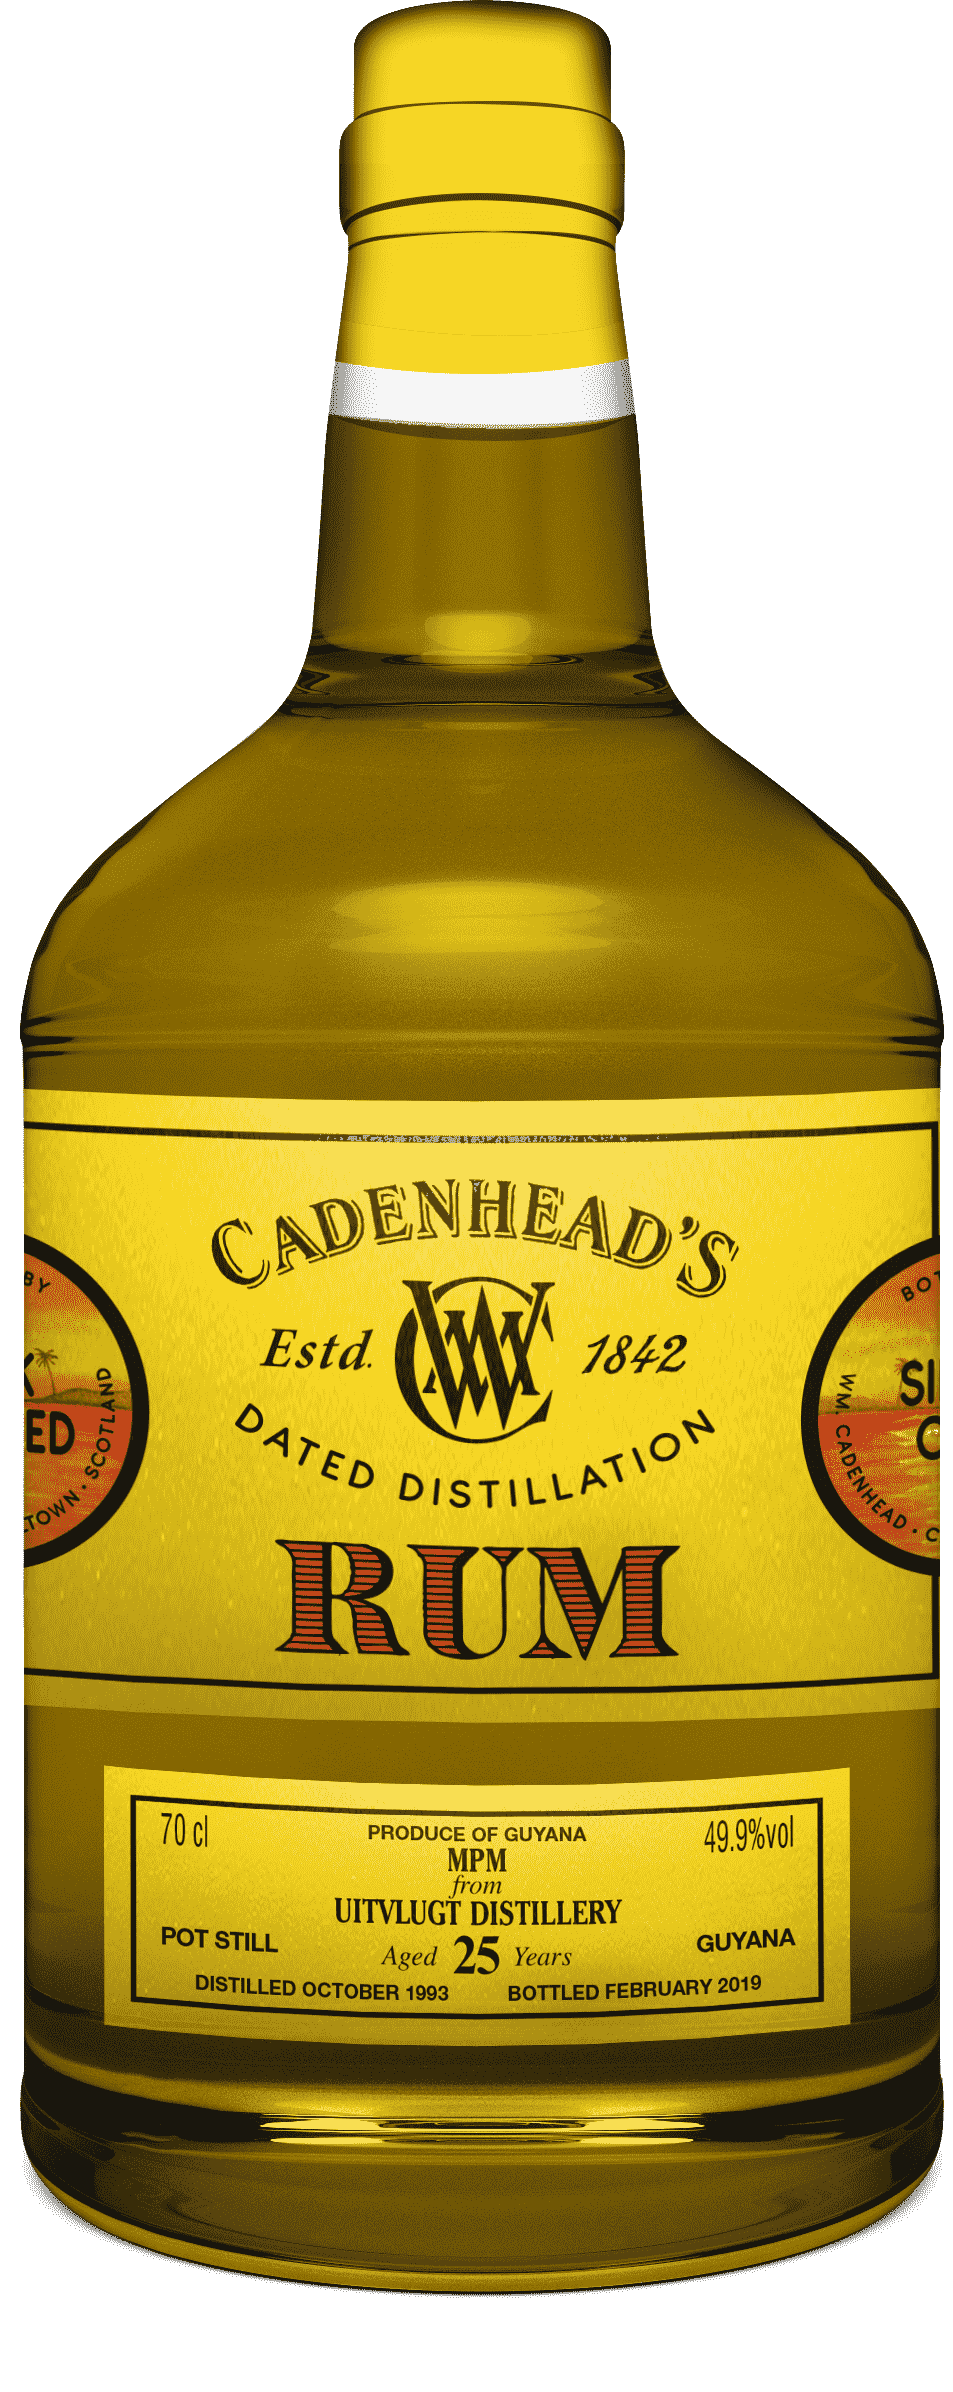 A Bottle of Dated-Distilled-Guyana-49.9